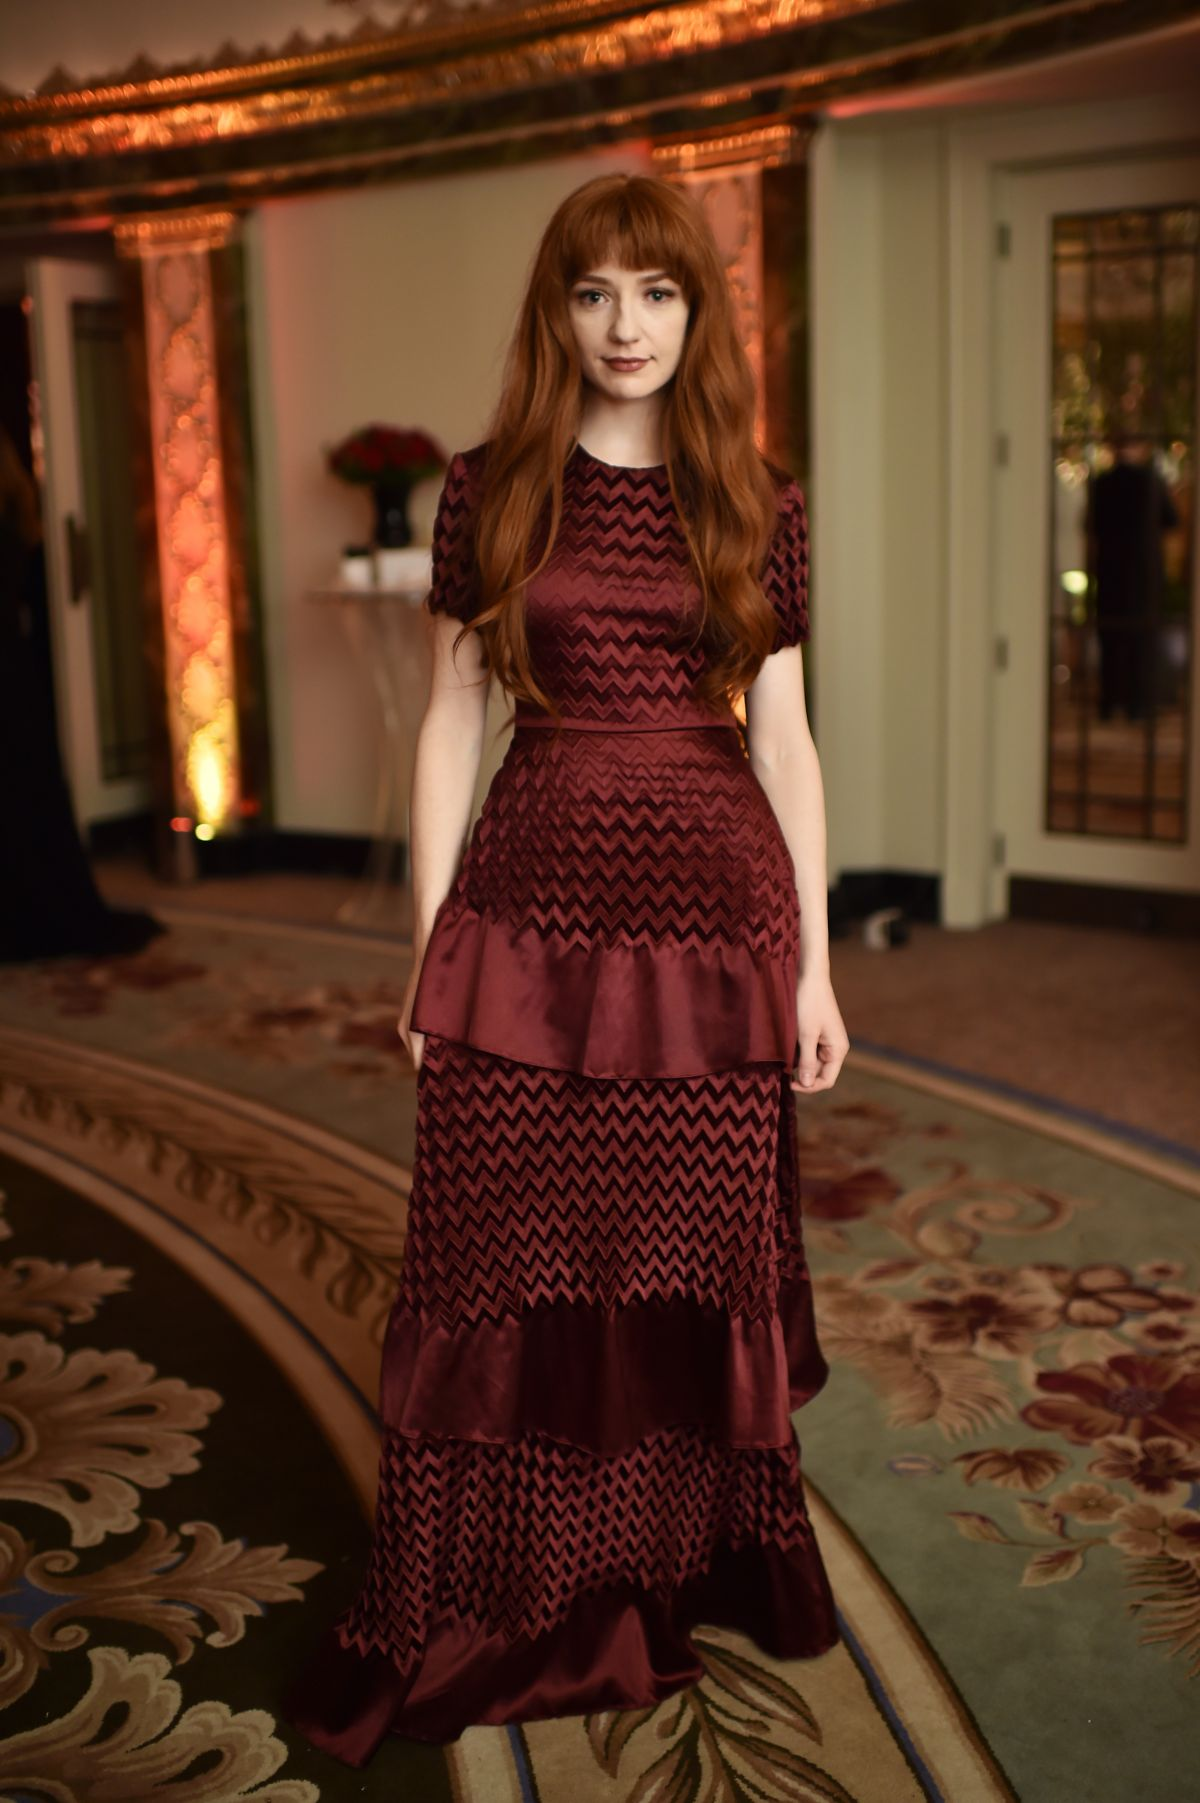 NICOLA ROBERTS At Art Of Wishes Gala Dinner 02102017 HawtCelebs